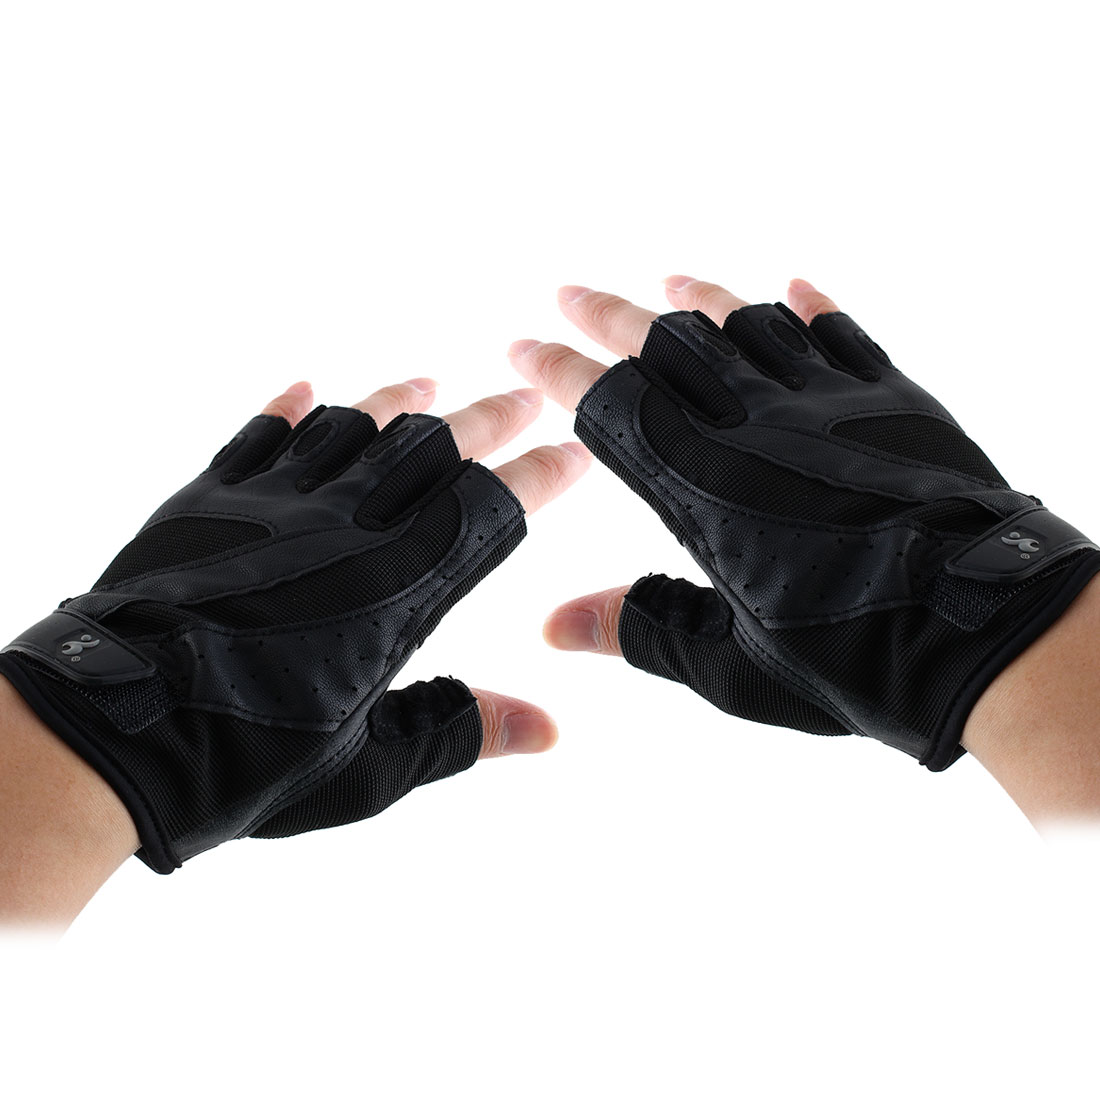 Boodun Authorized Men Sports Weight Lifting Gym Training Workout Fitness Palm Support Gloves Size XXL Pair